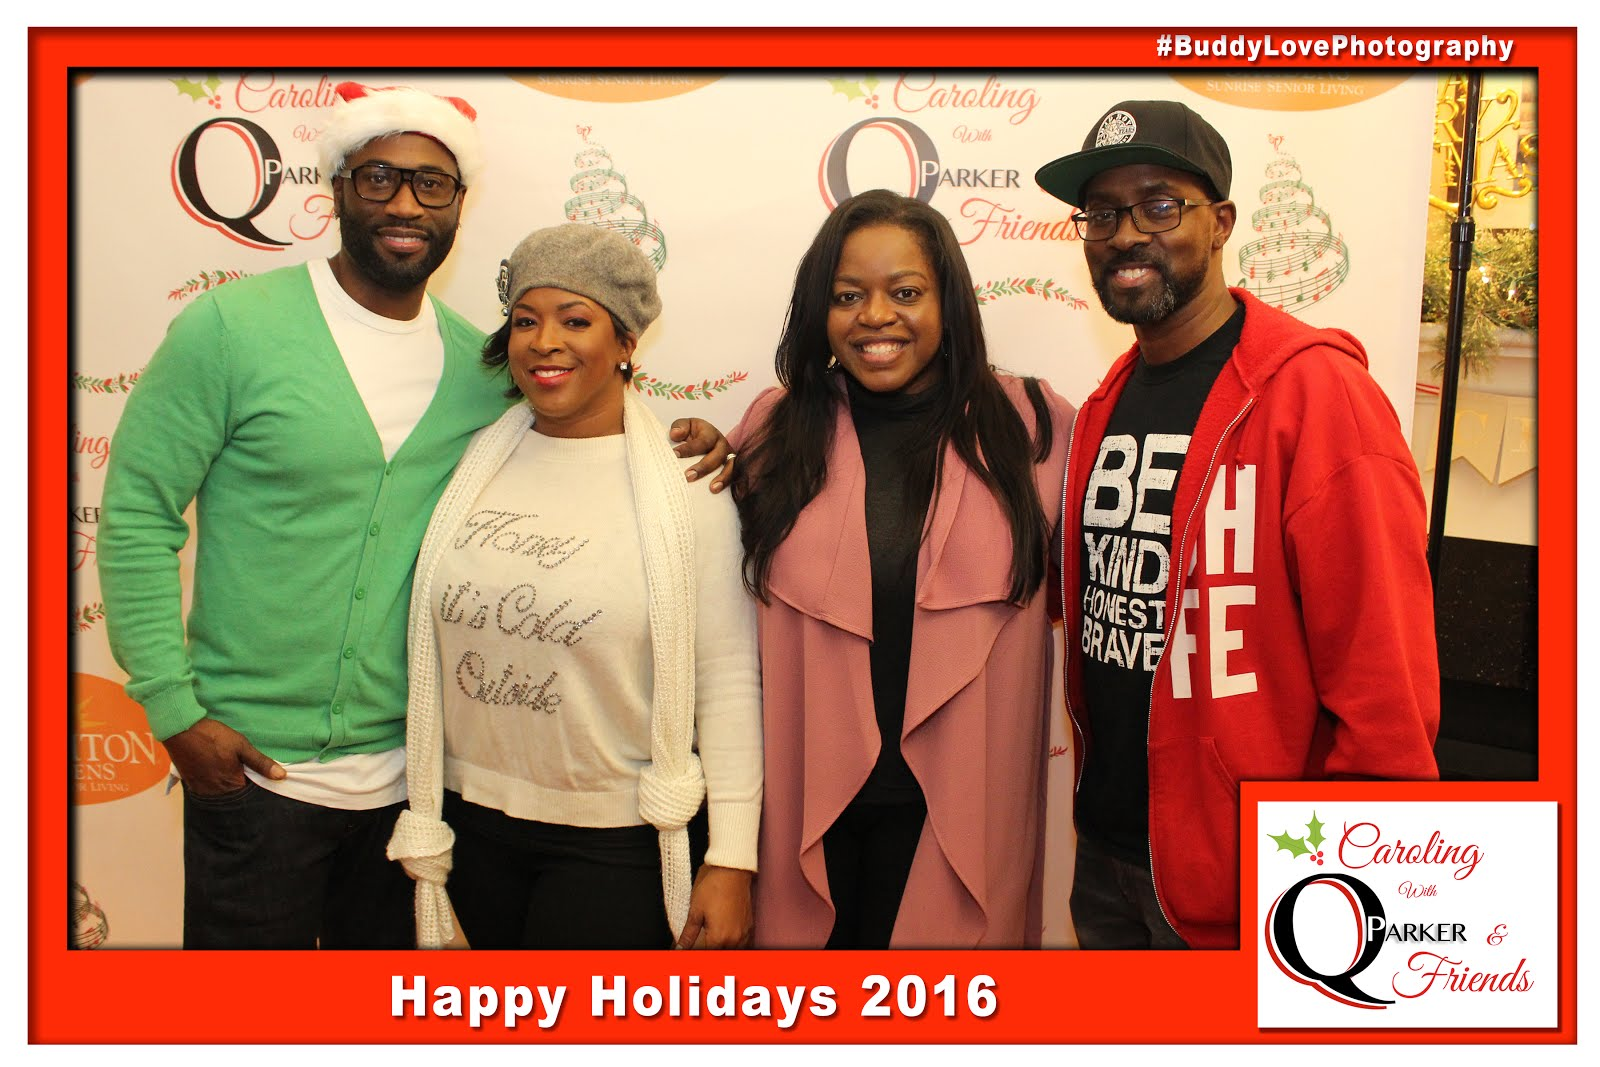 Q Parker Holiday Caroling Party